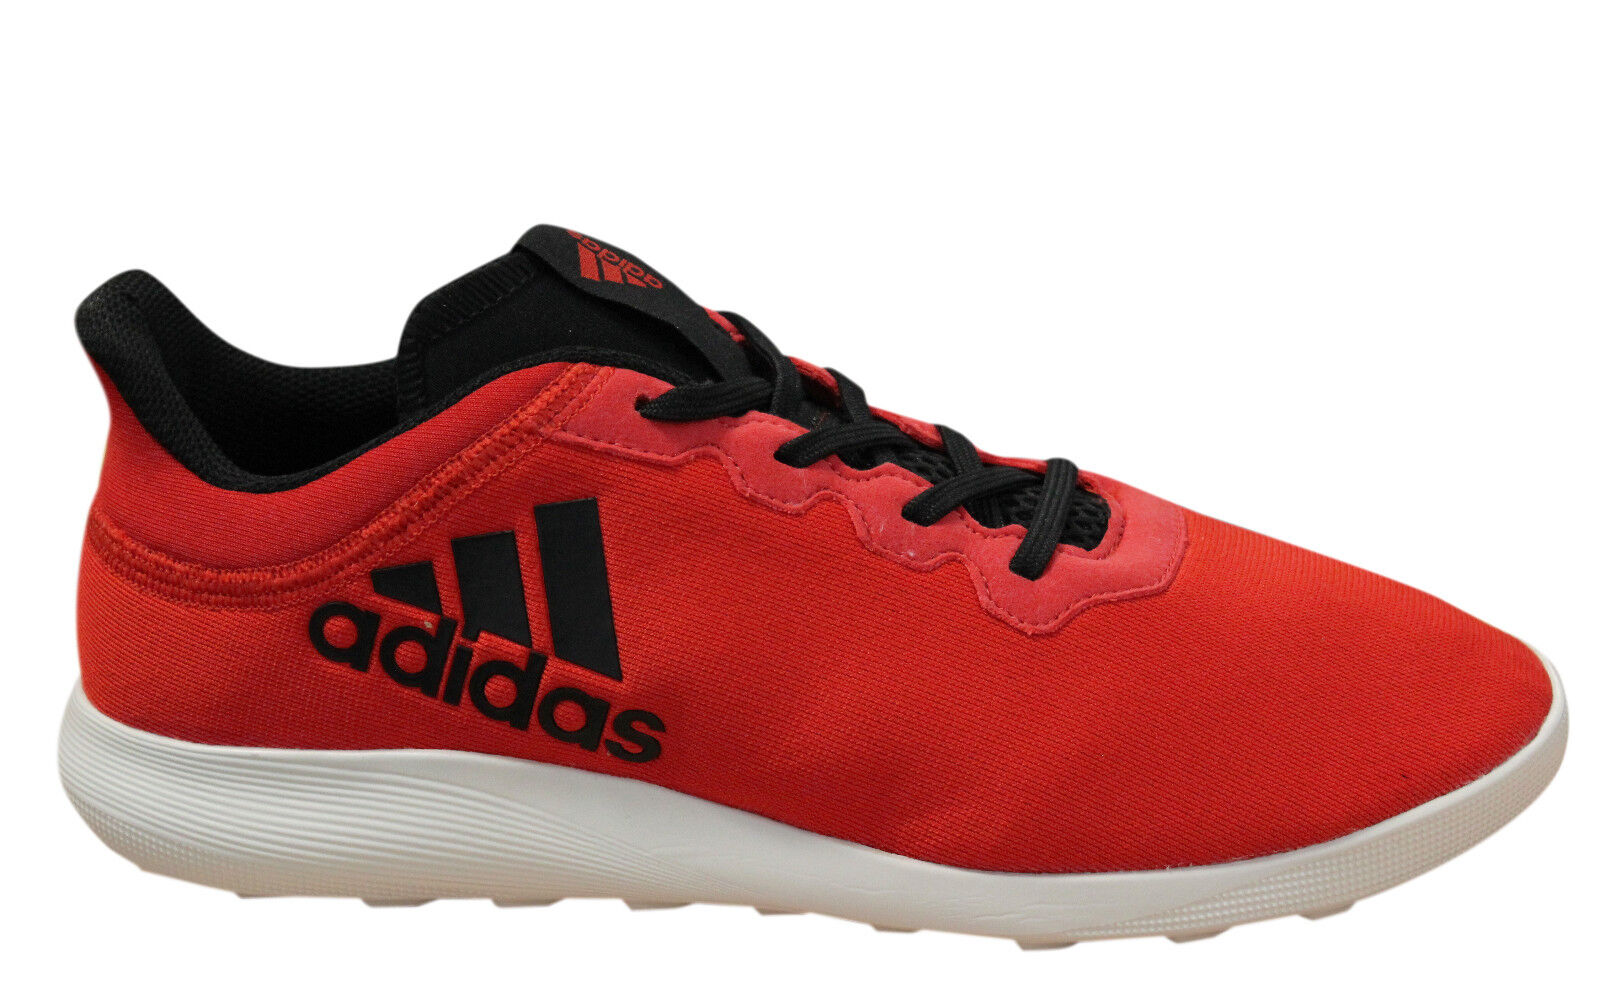 Details about Adidas x 16.4 TR Mens Lace Up Running Trainers Red Football  Shoes BB4443 M1 0ad7d726a317